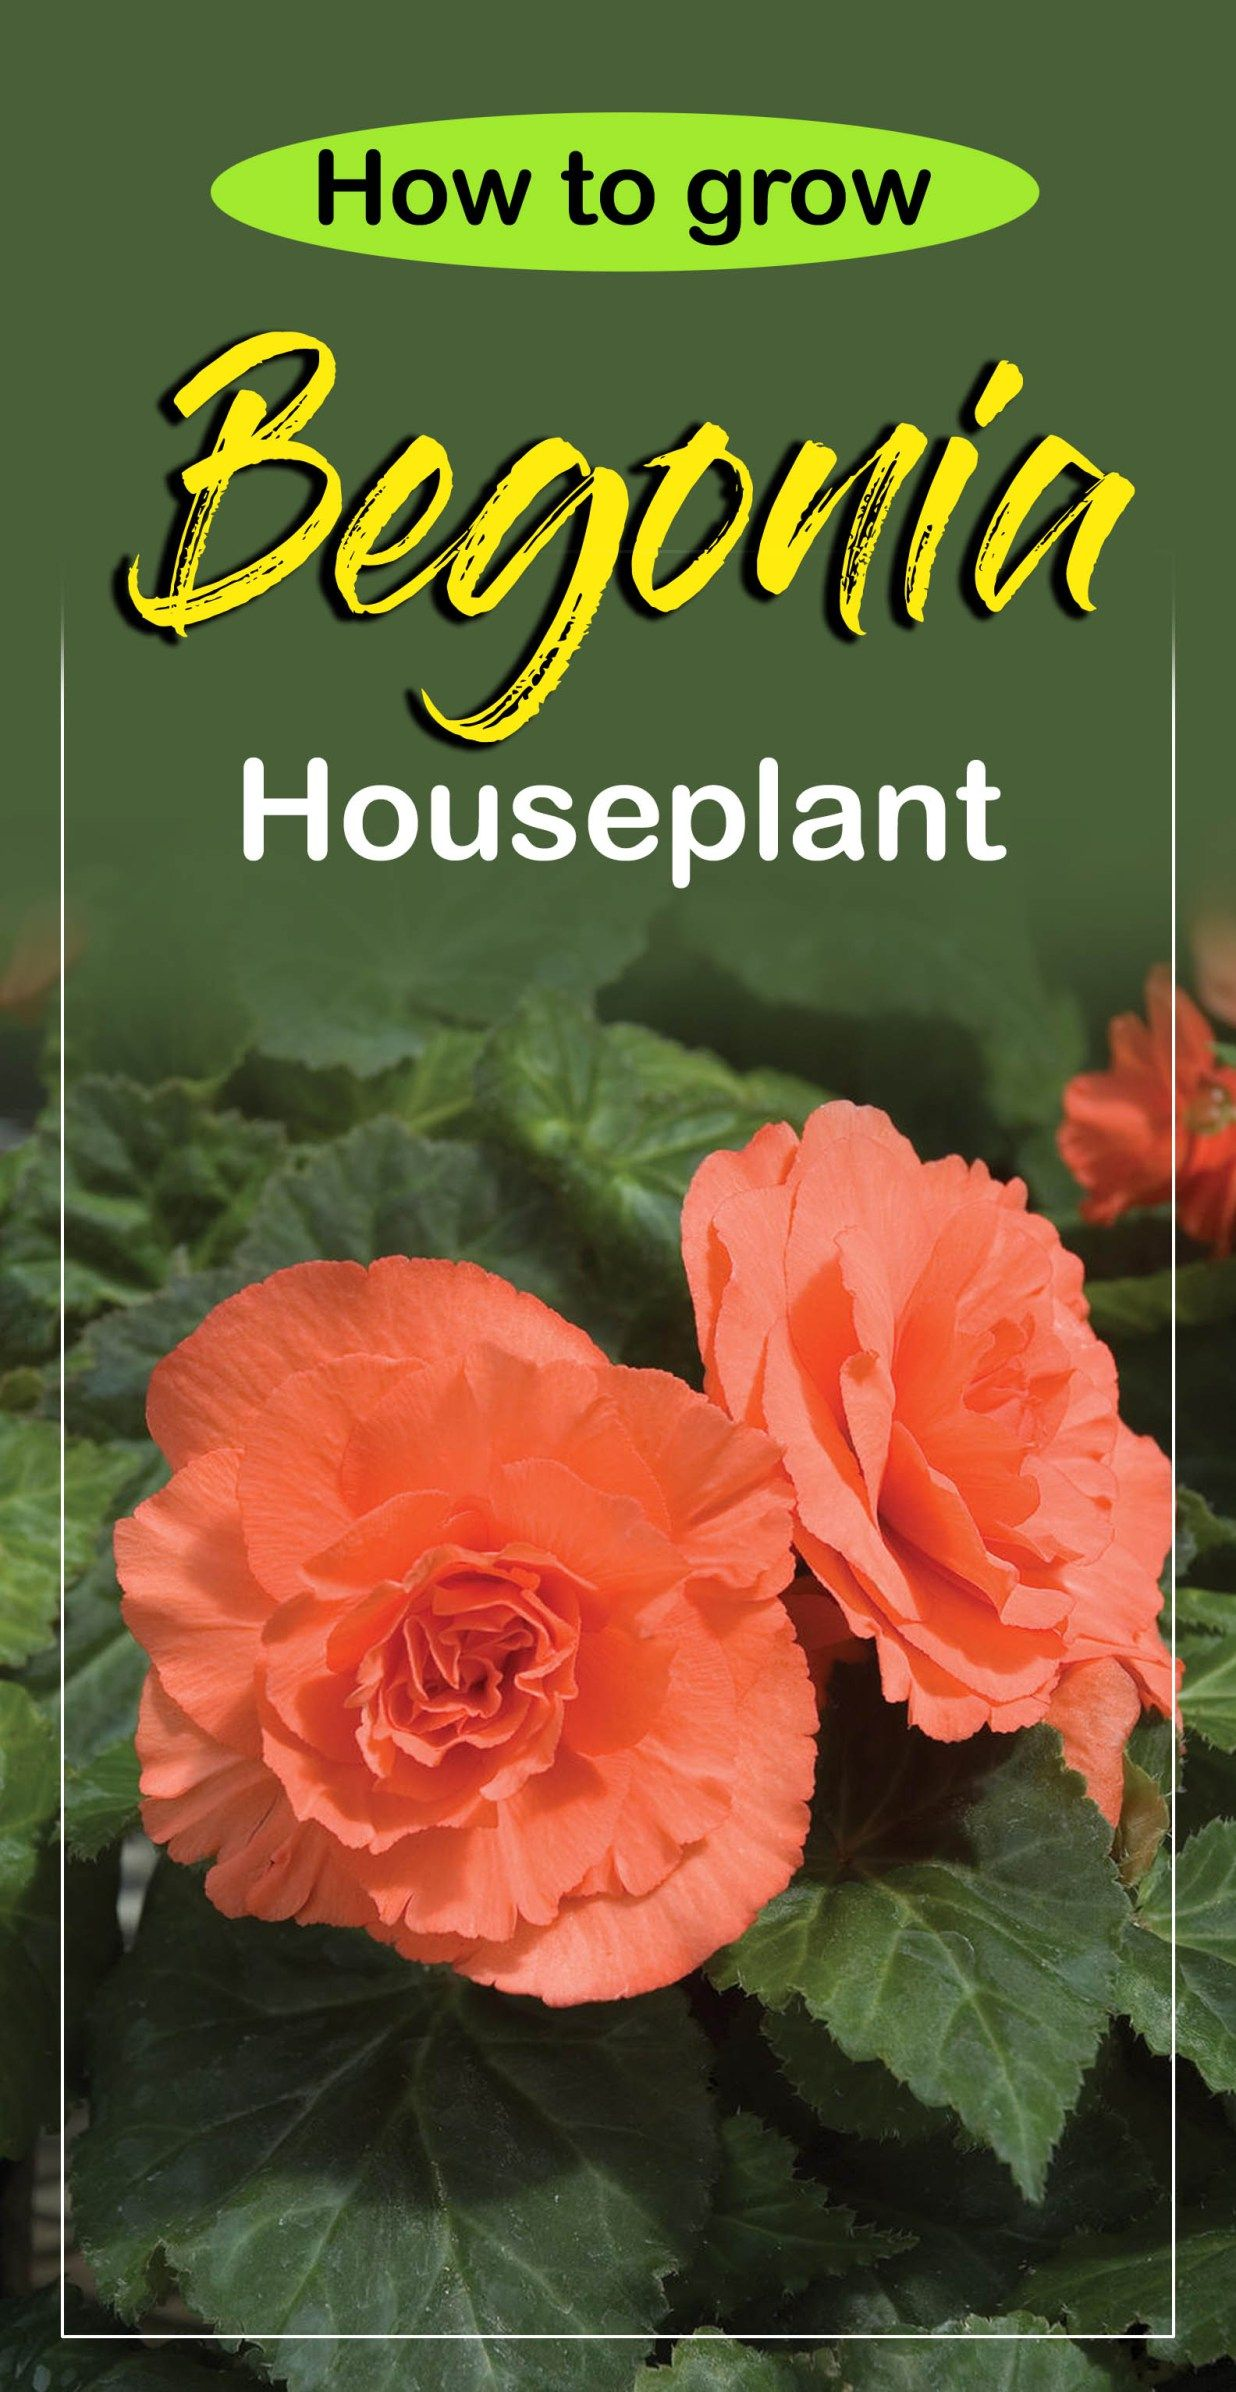 How To Grow Begonias Growing Begonia Begonia Care Naturebring Plant Care Houseplant Indoor Flowering Plants Plants